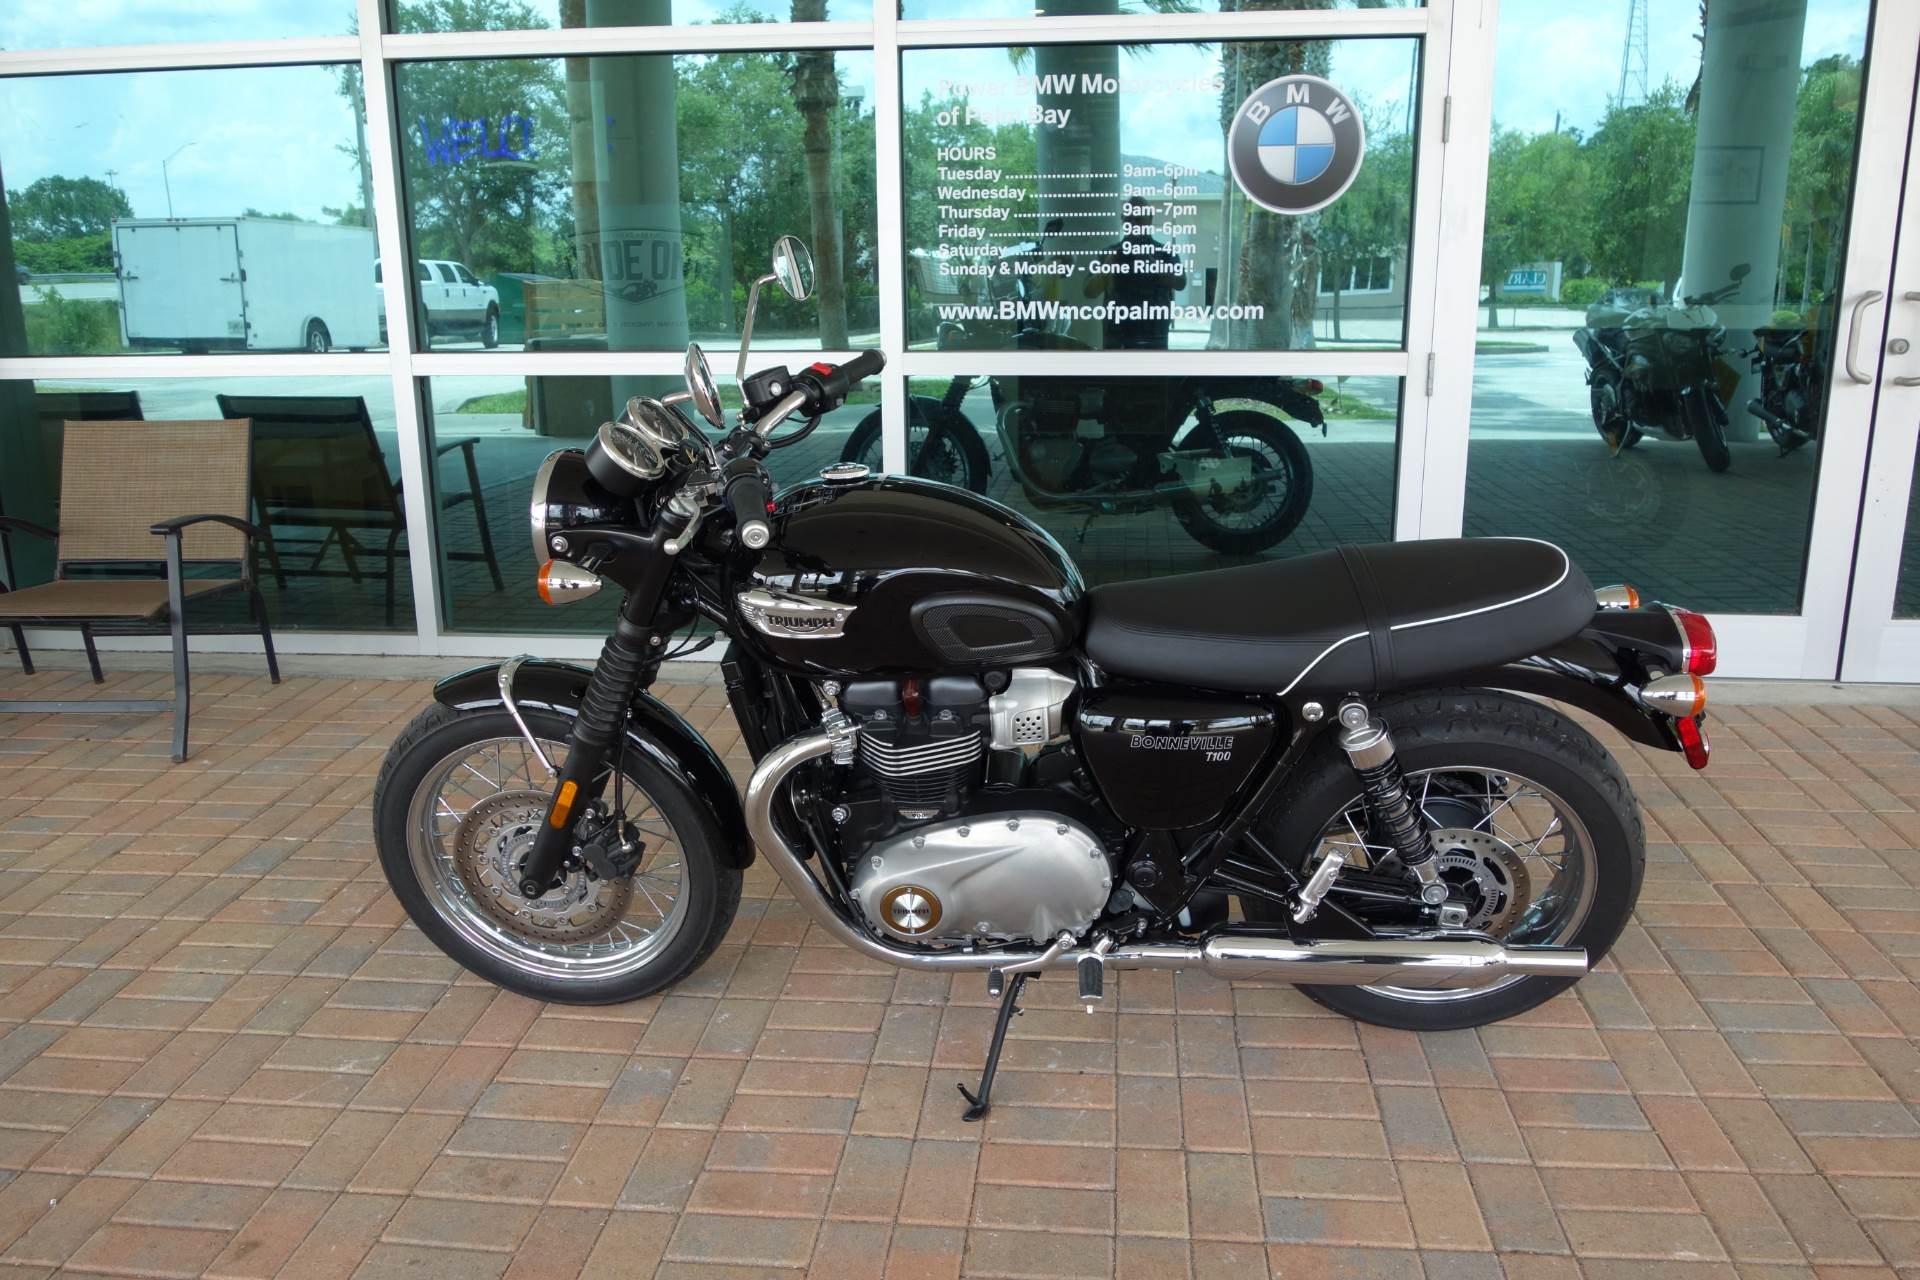 Used 2018 Triumph Bonneville T100 Jet Black Motorcycles In Palm